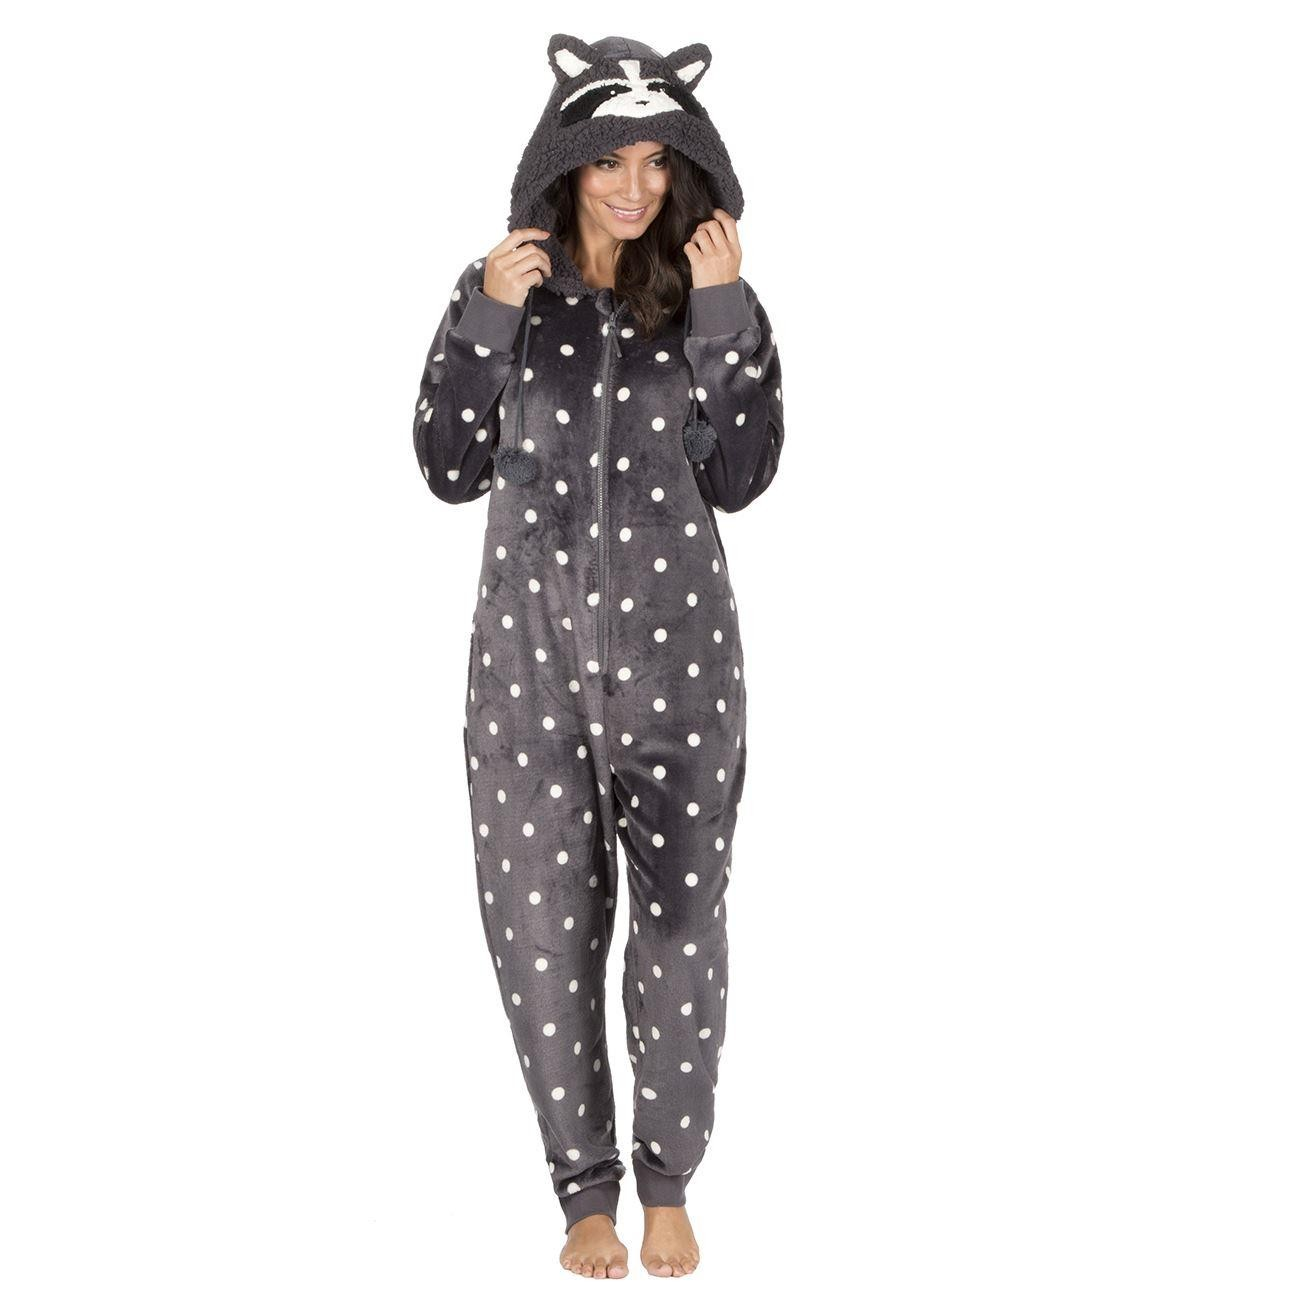 Onezee Novelty Flannel Onesie - Black